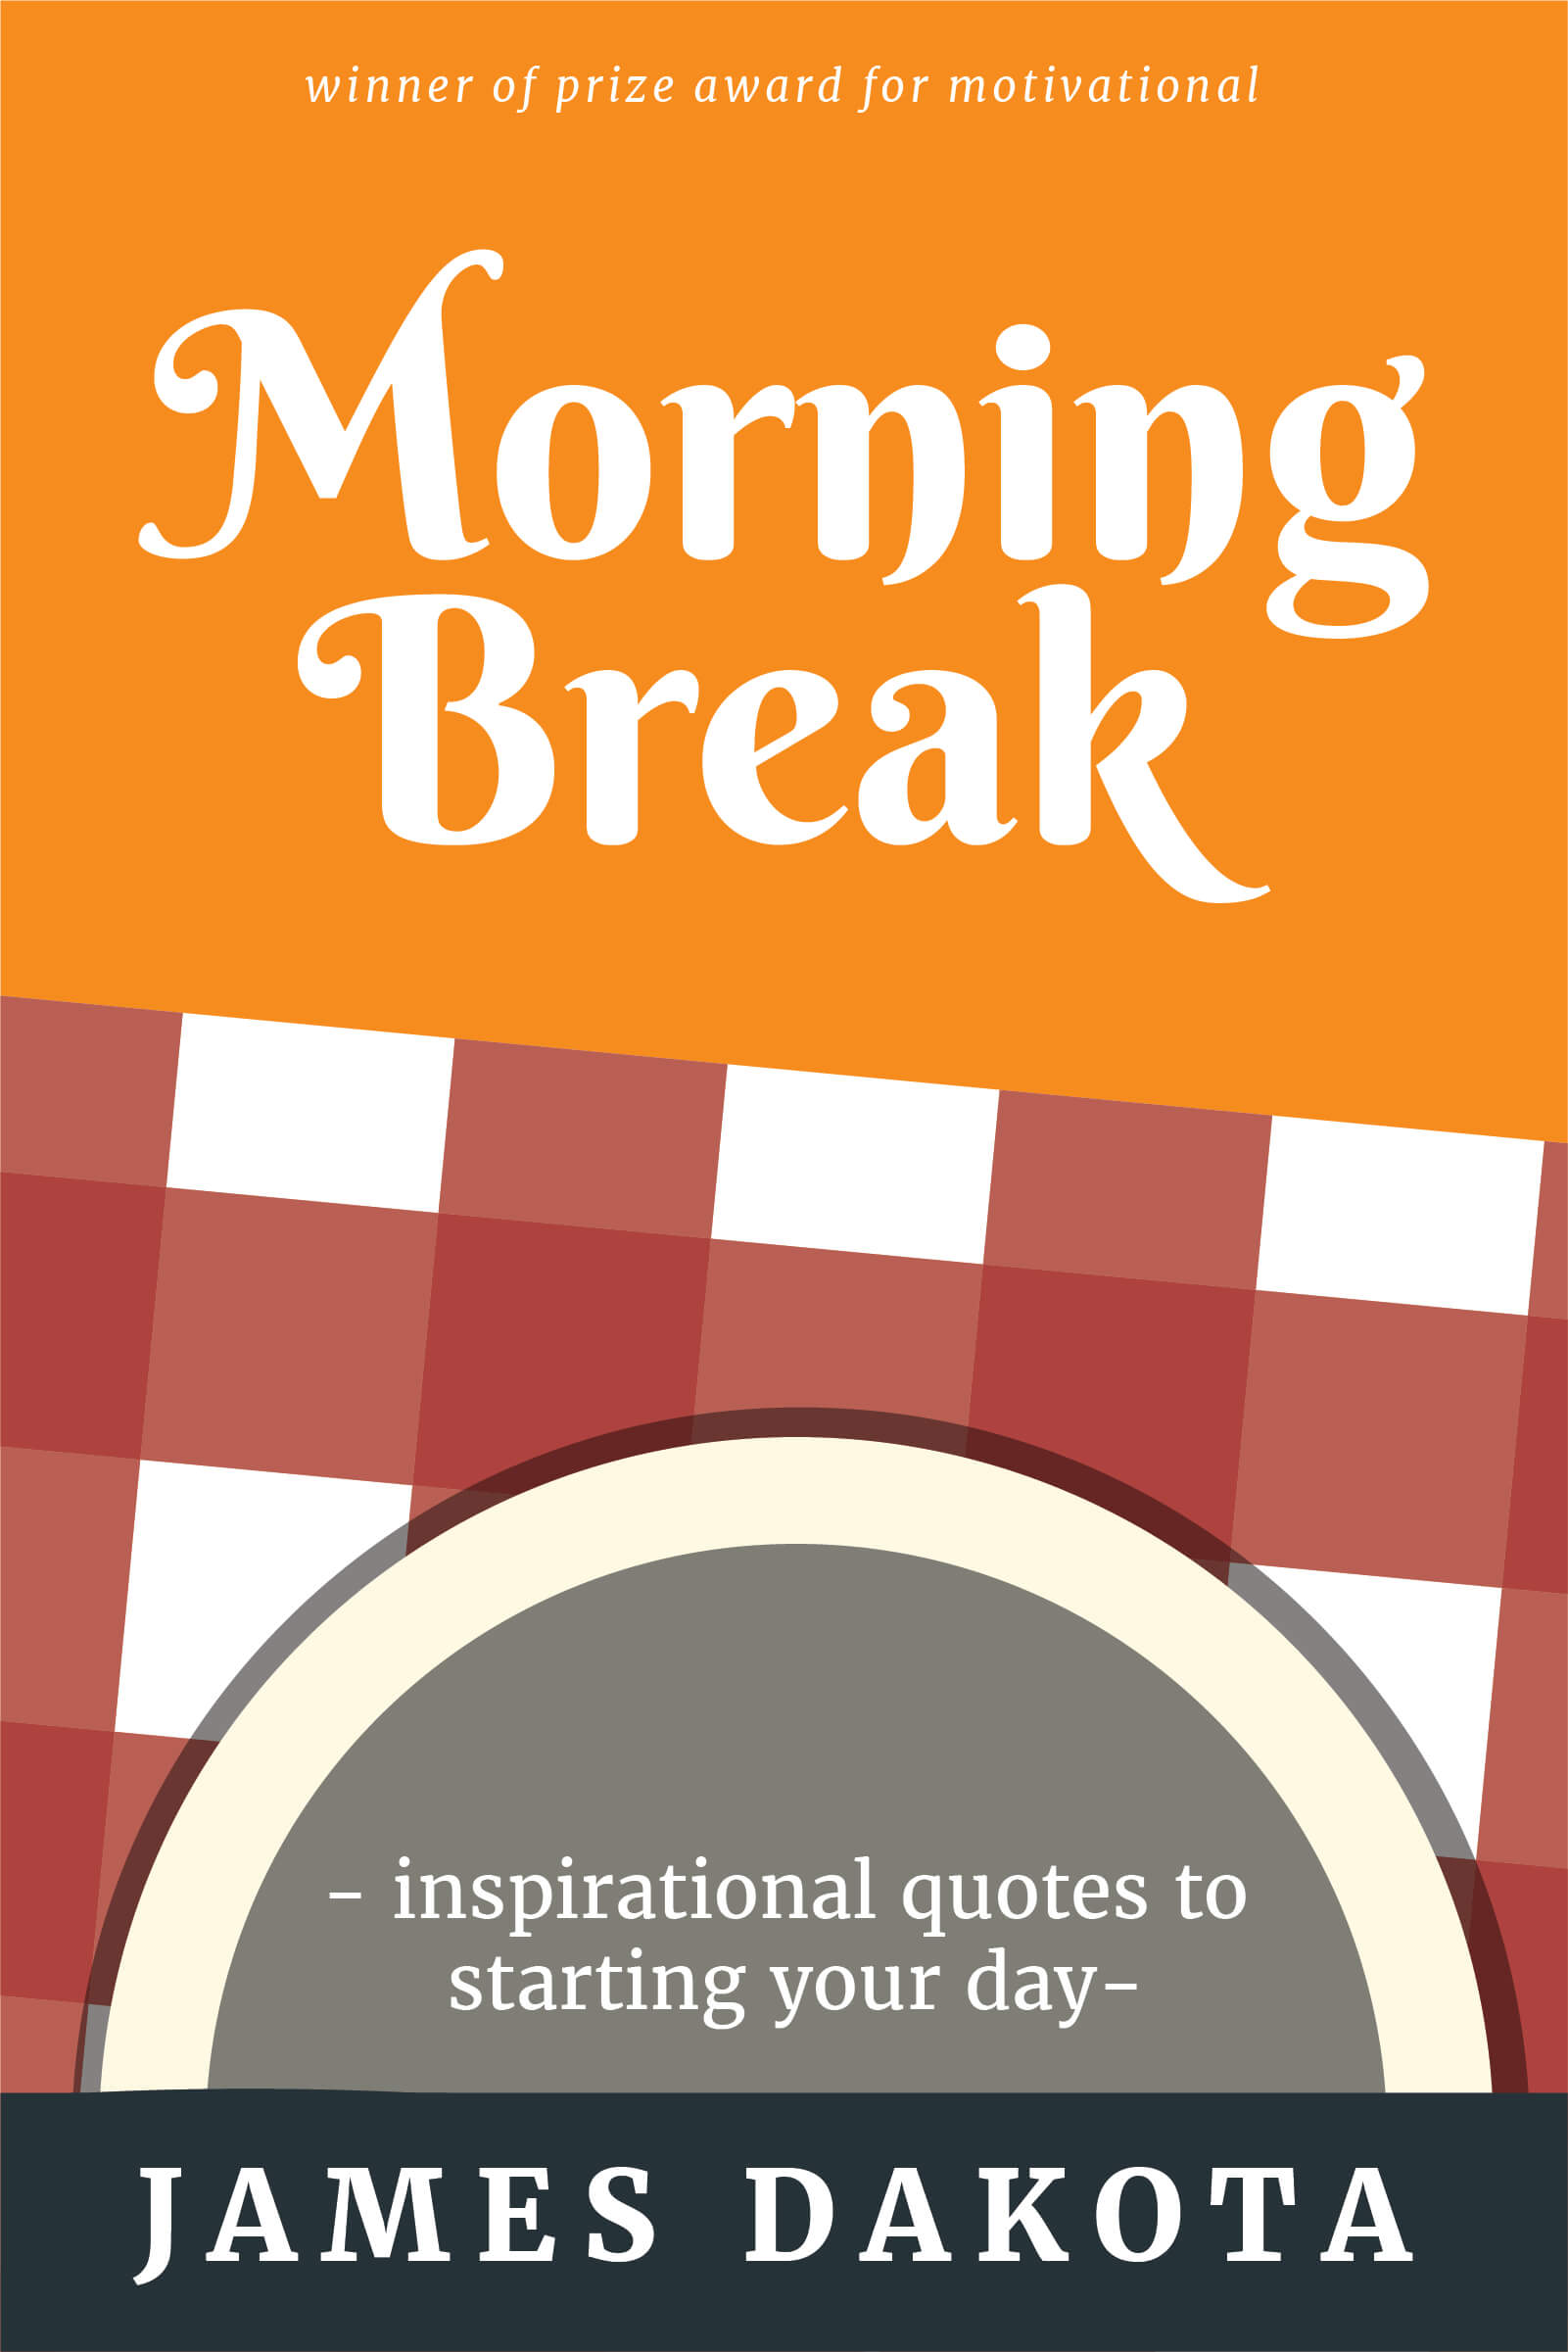 Minimalist Book Cover Quotes ~ Clean and minimalist motivational book cover design download free